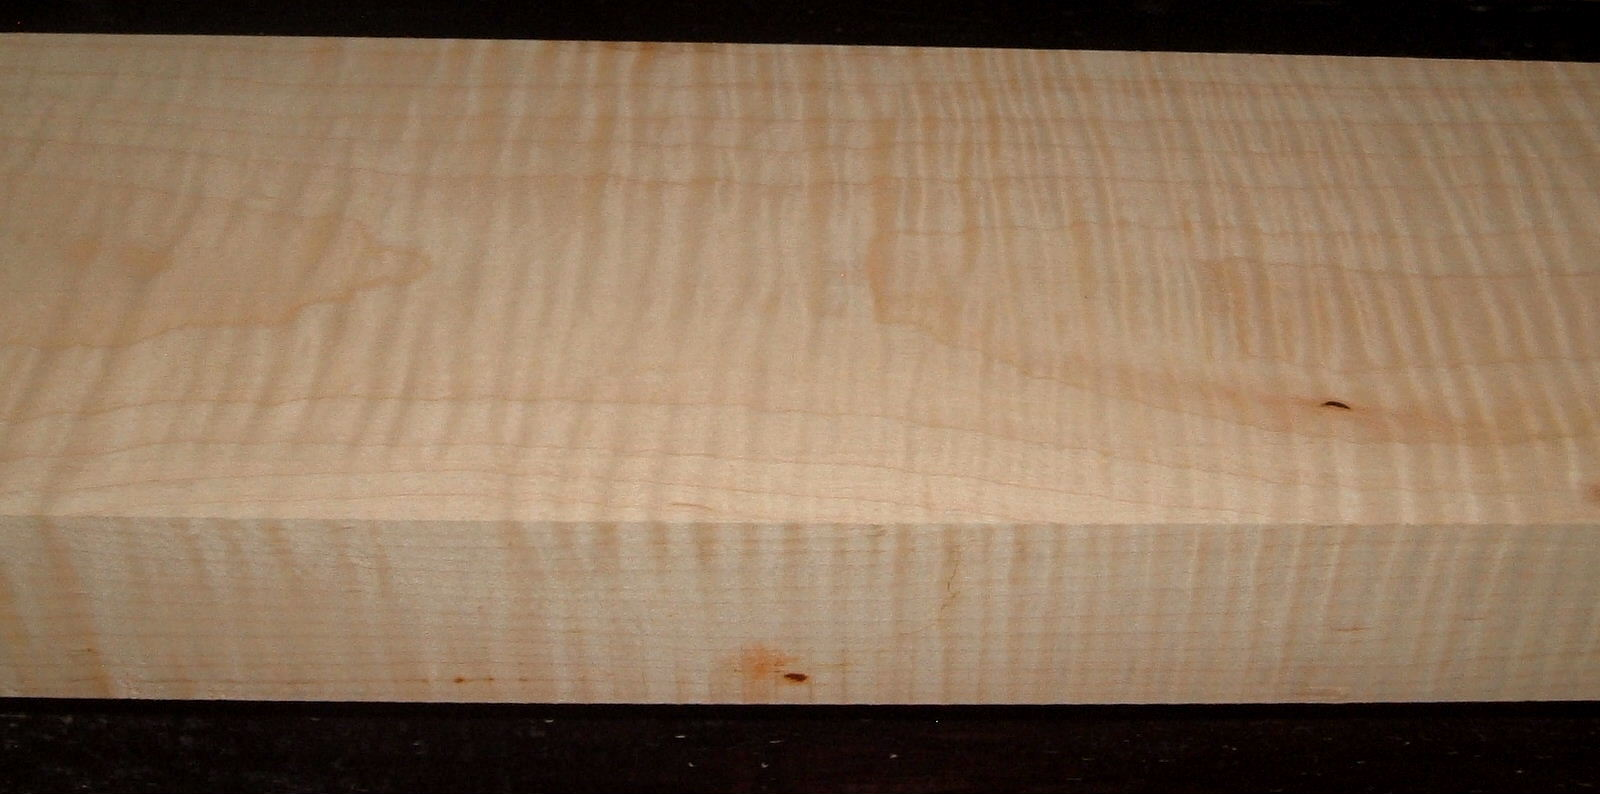 M2006-498, 2-1/16x5-3/4x42, 8/4 Curly Tiger Maple